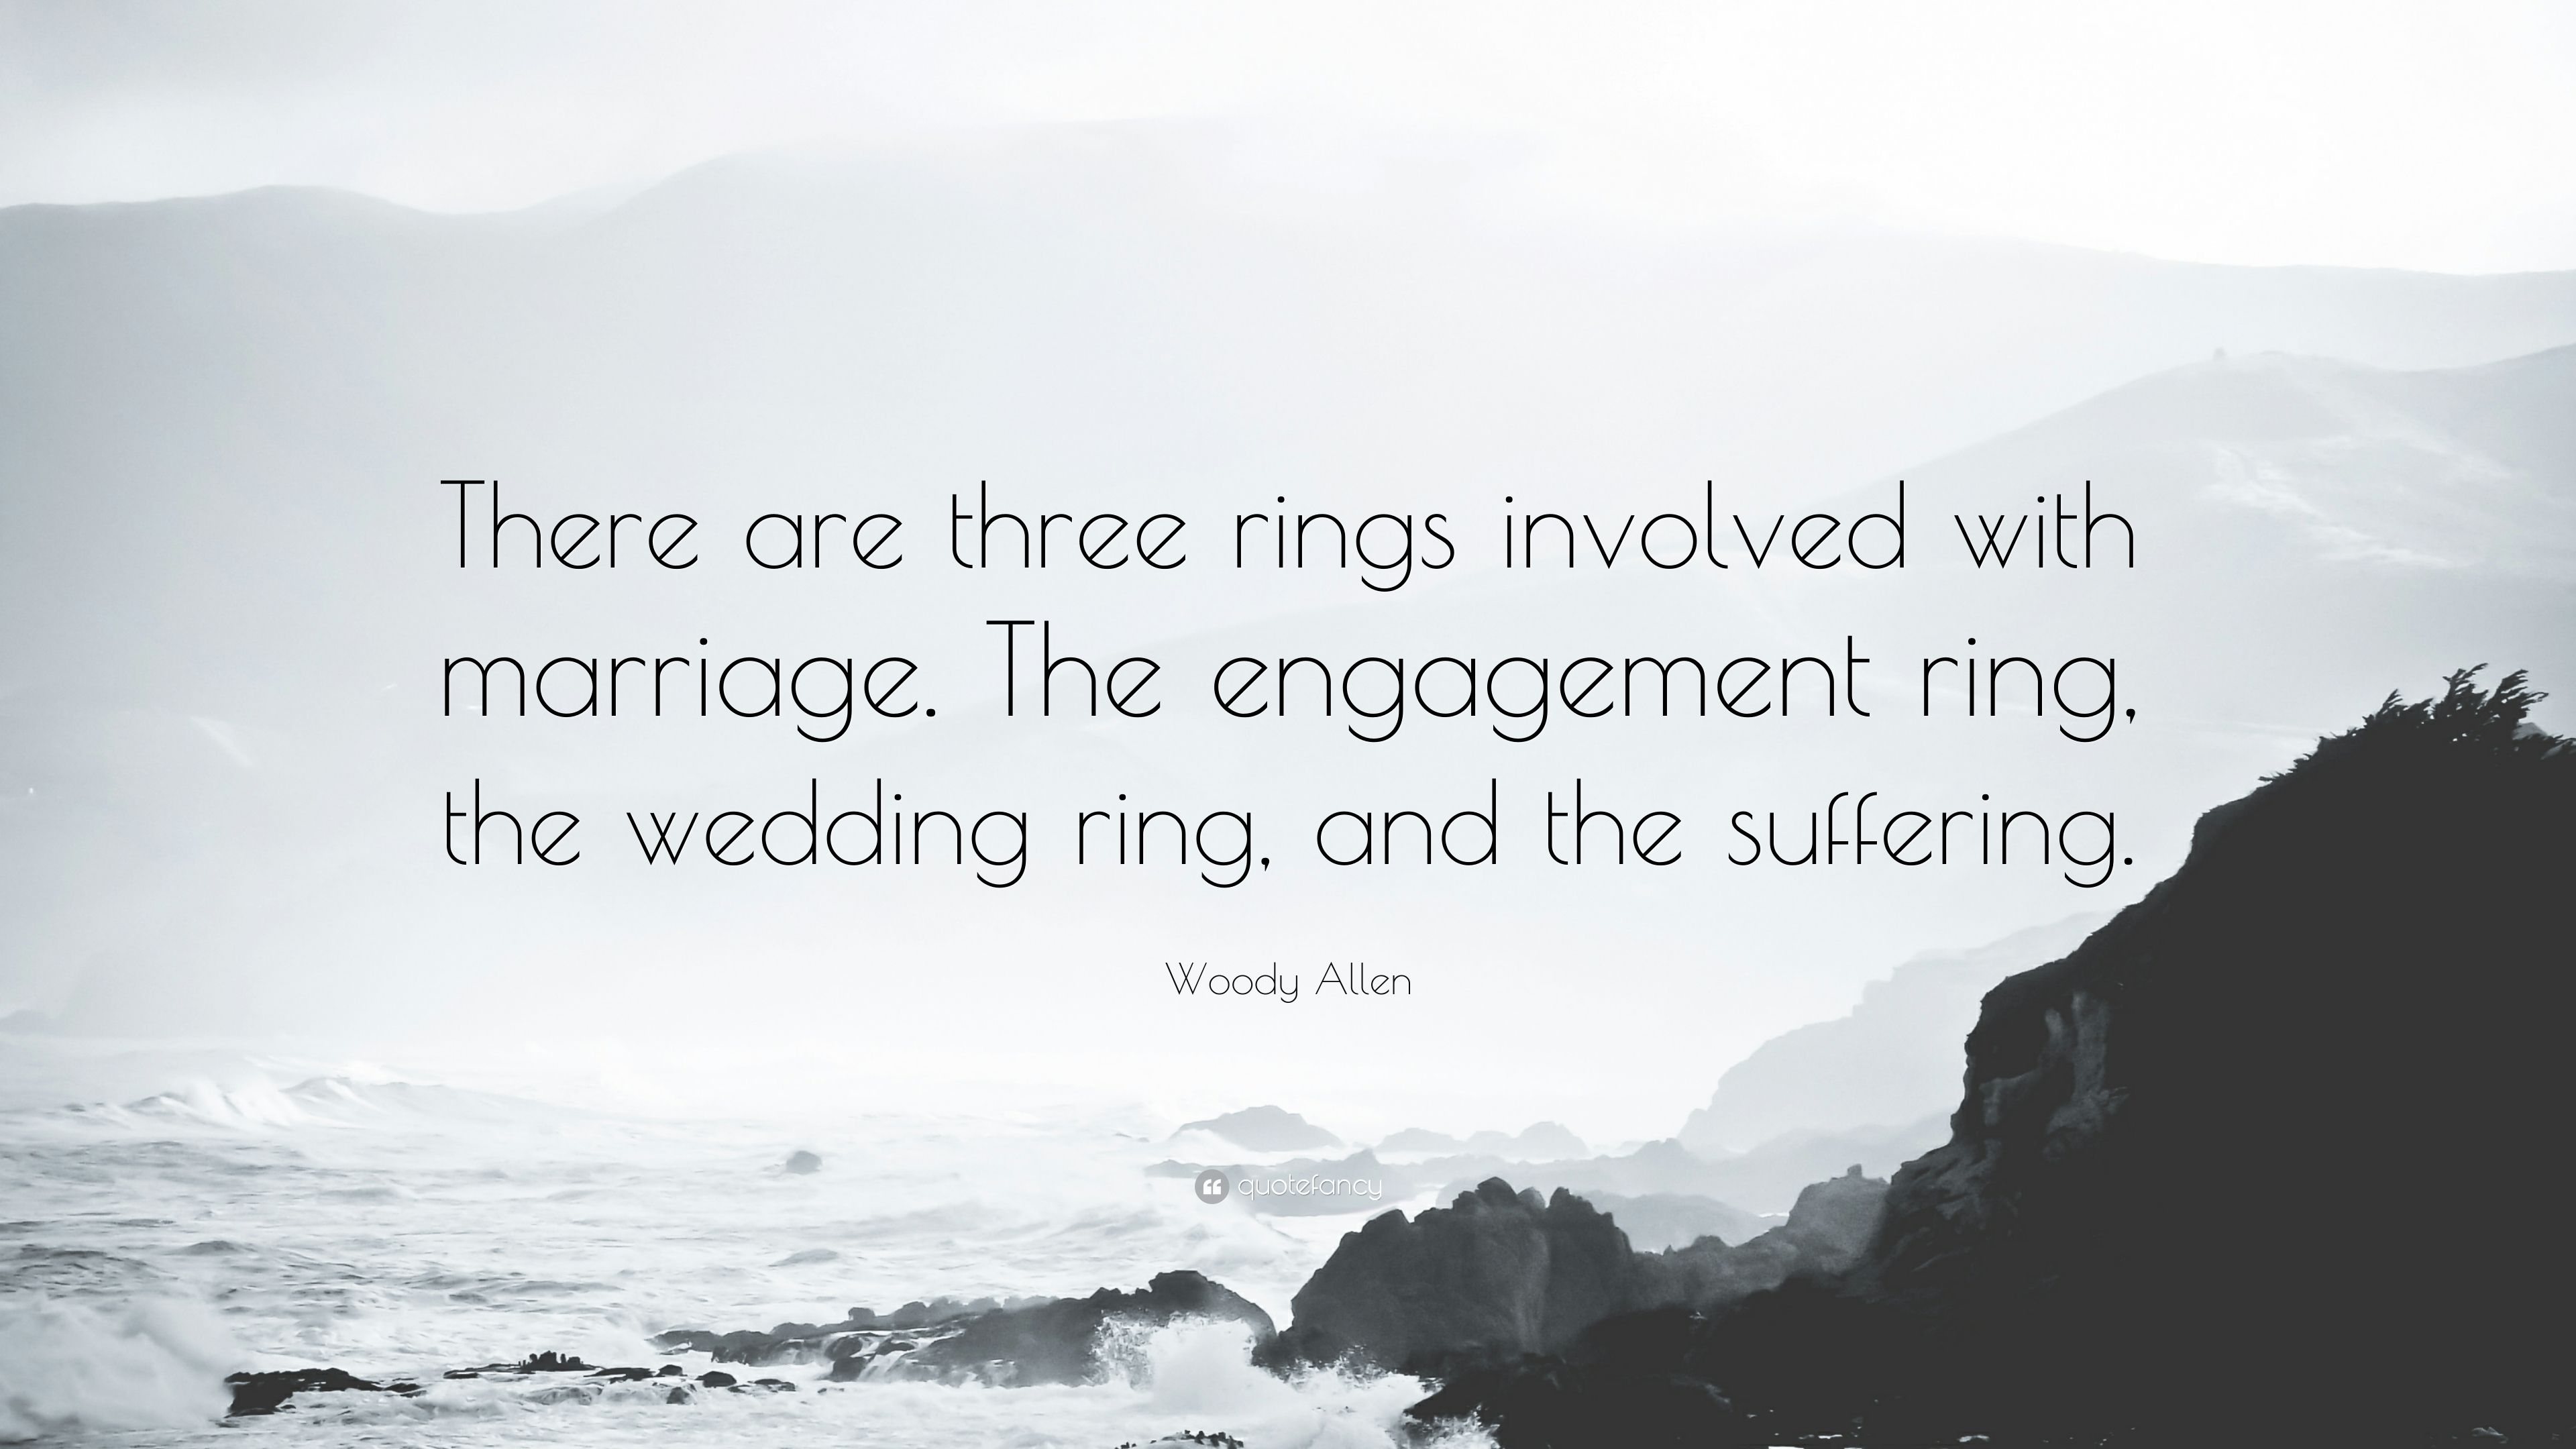 Woody Allen Quote There are three rings involved with marriage